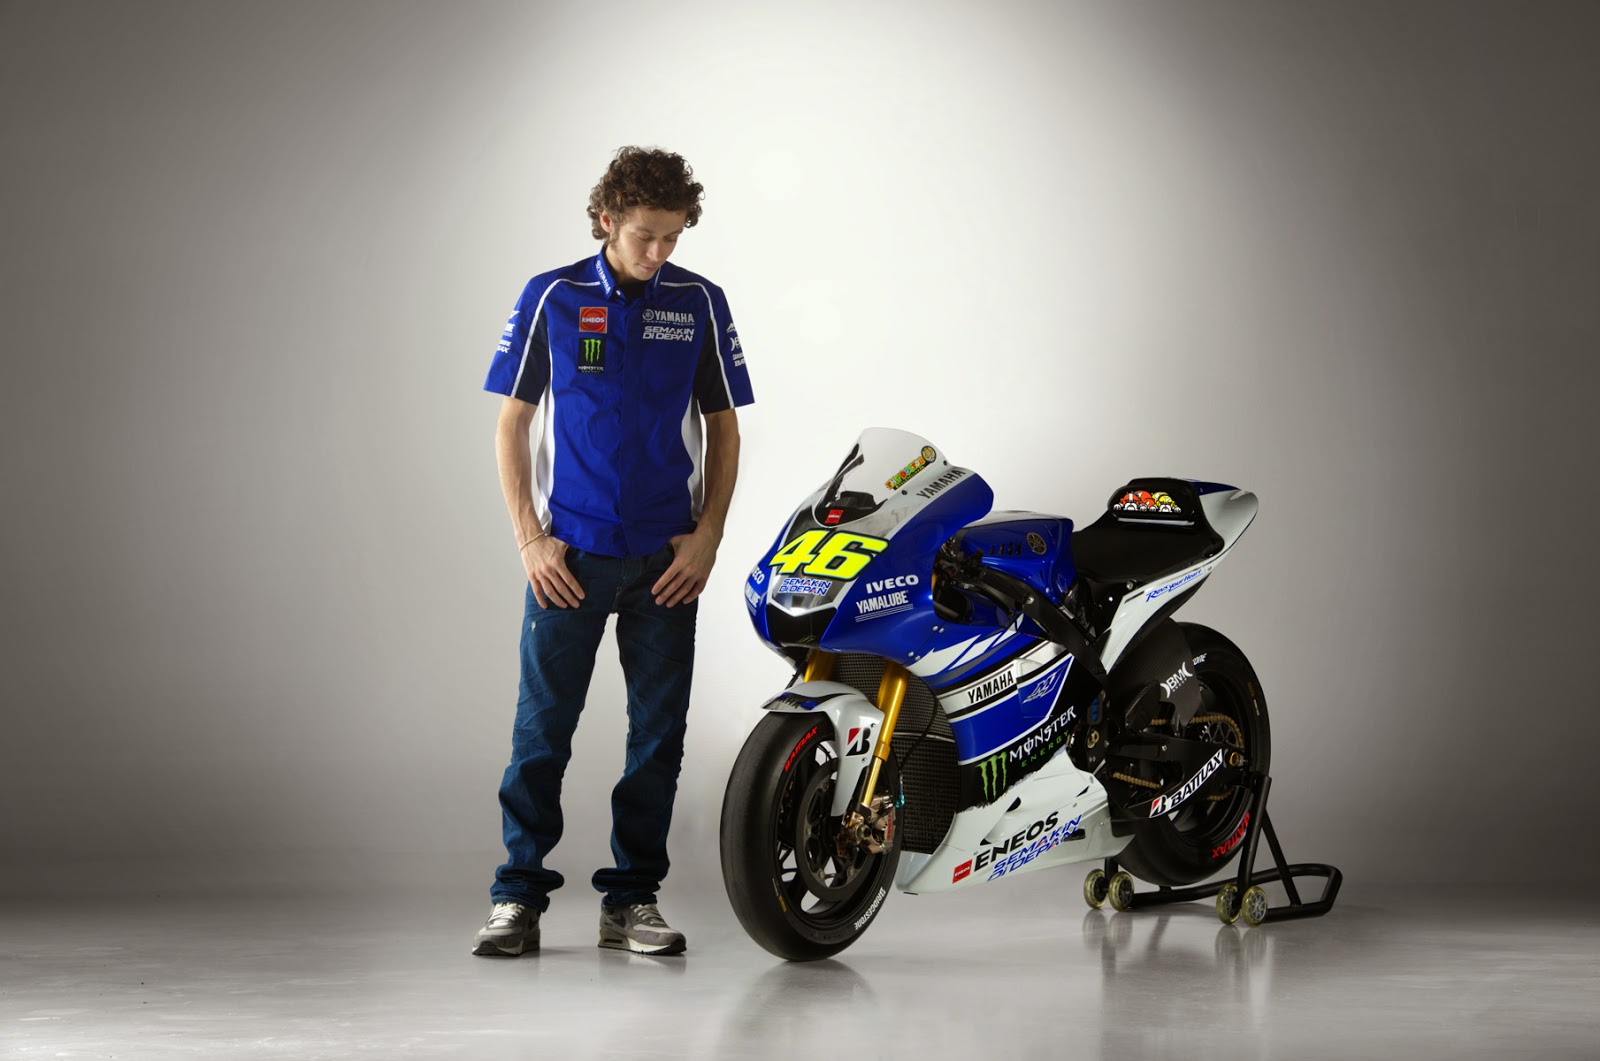 Valentino Rossi HD Wallpaper 2014